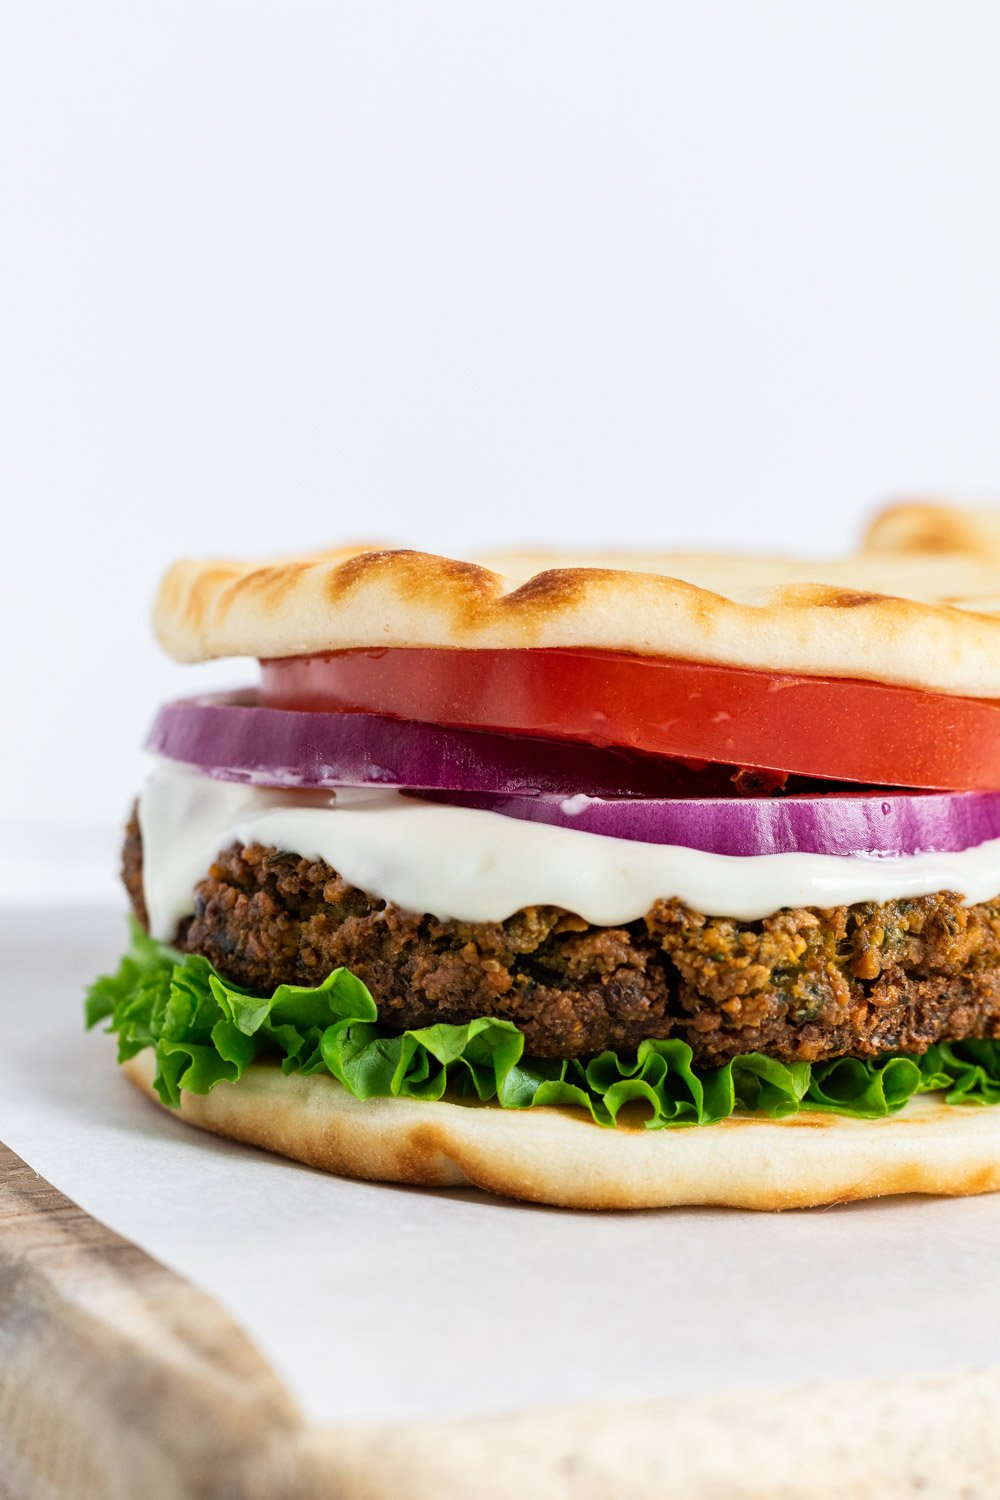 A close up view of a falafel burger with lettuce, tomato and onion.